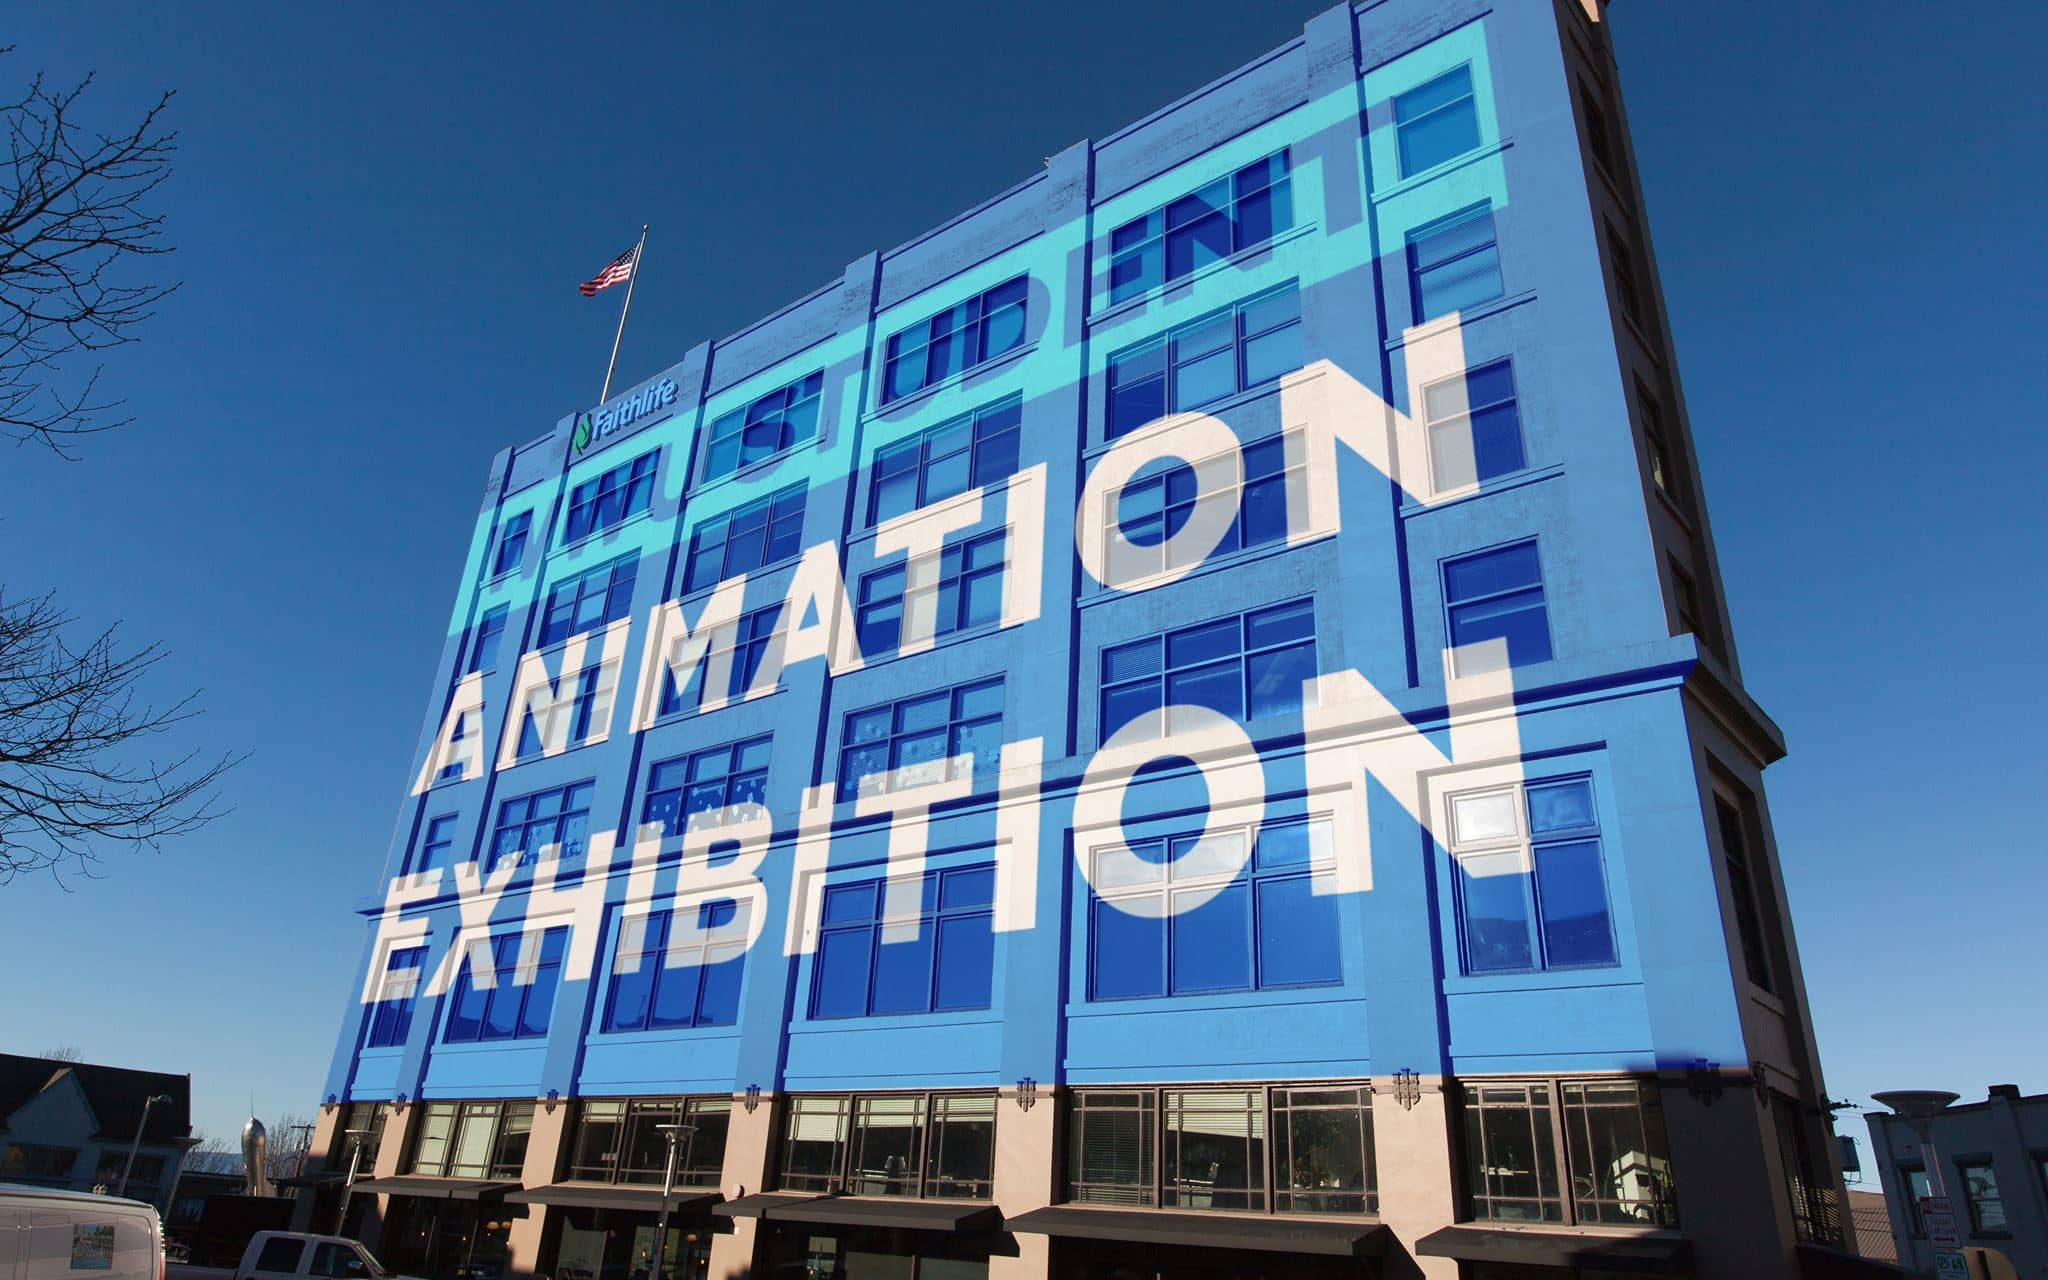 "projection of the words ""Animation Exhibition"" on the side of a 5-story building"